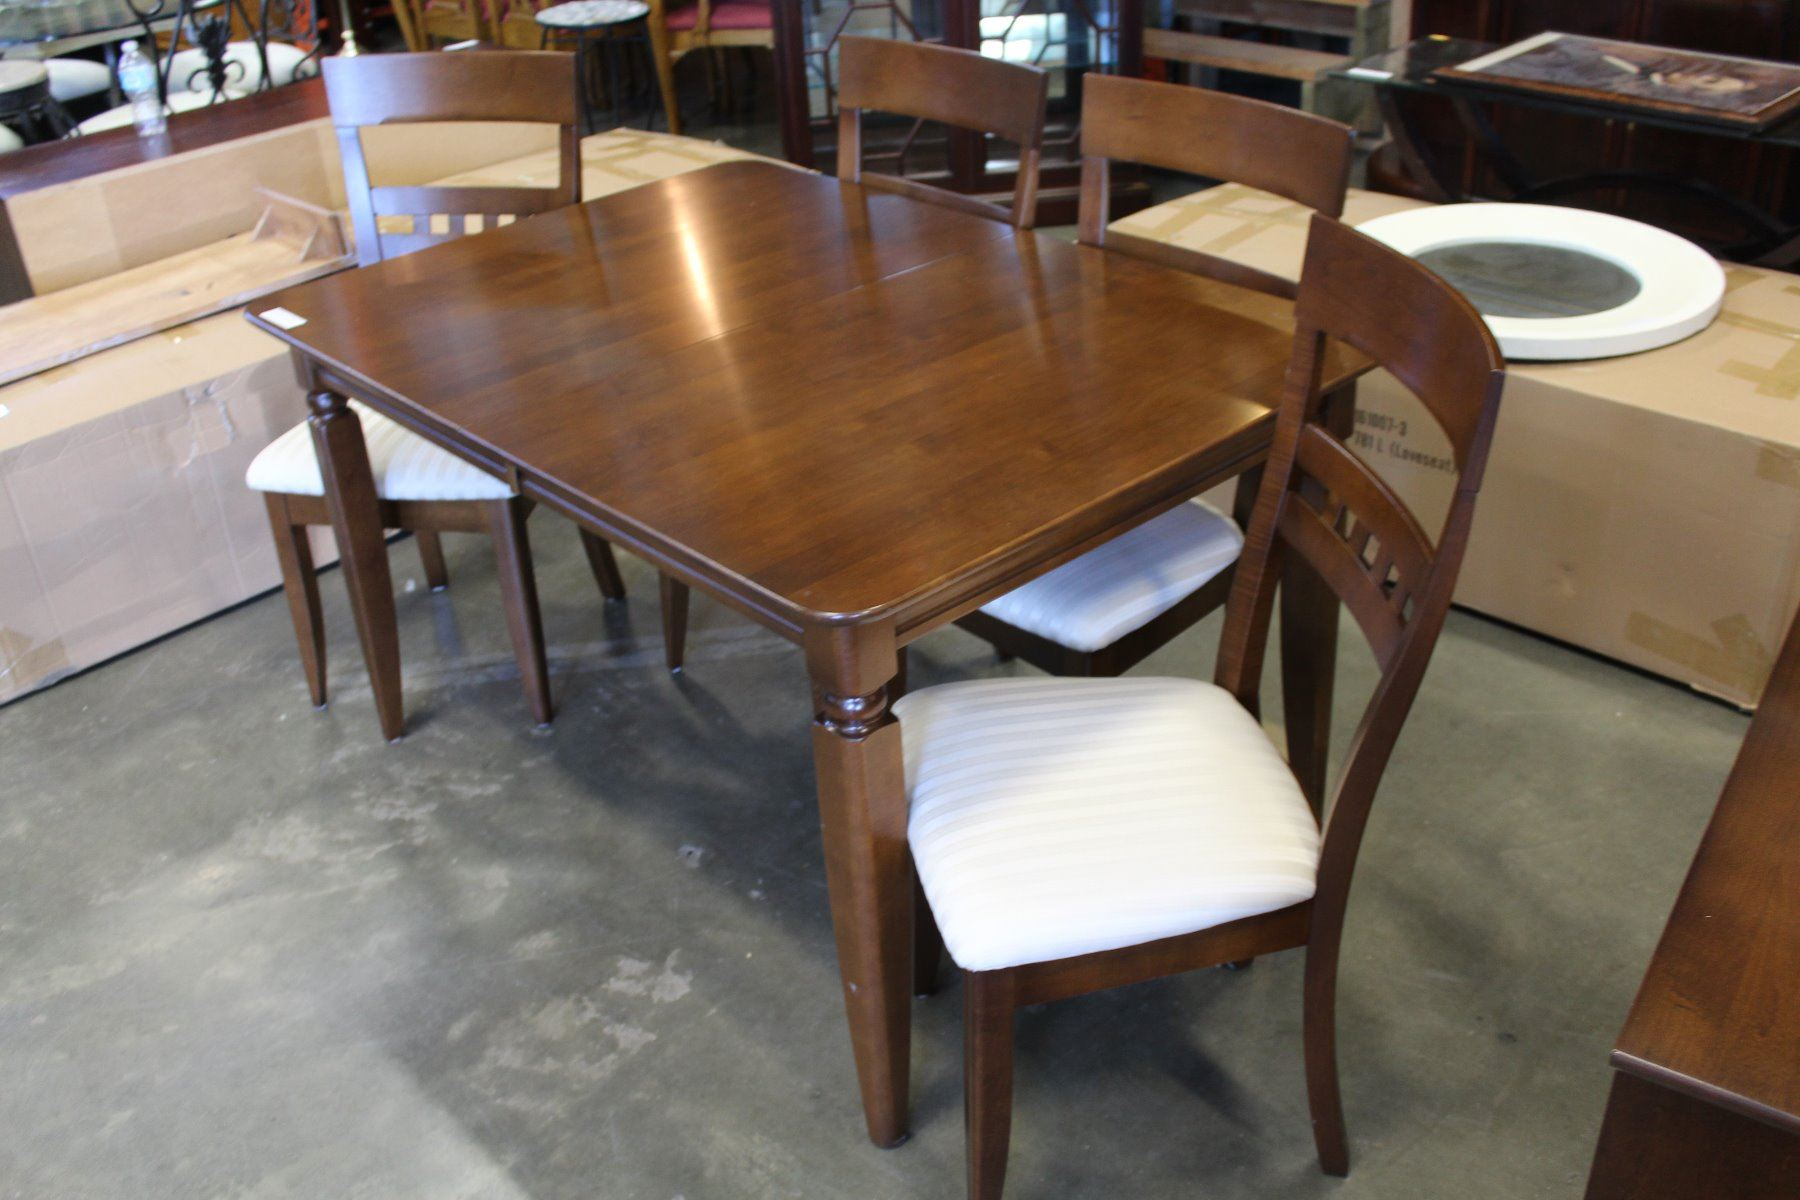 Image 3 ROXTON TEMPLE STUART MODERN DINING TABLE 4 CHAIRS LEAF